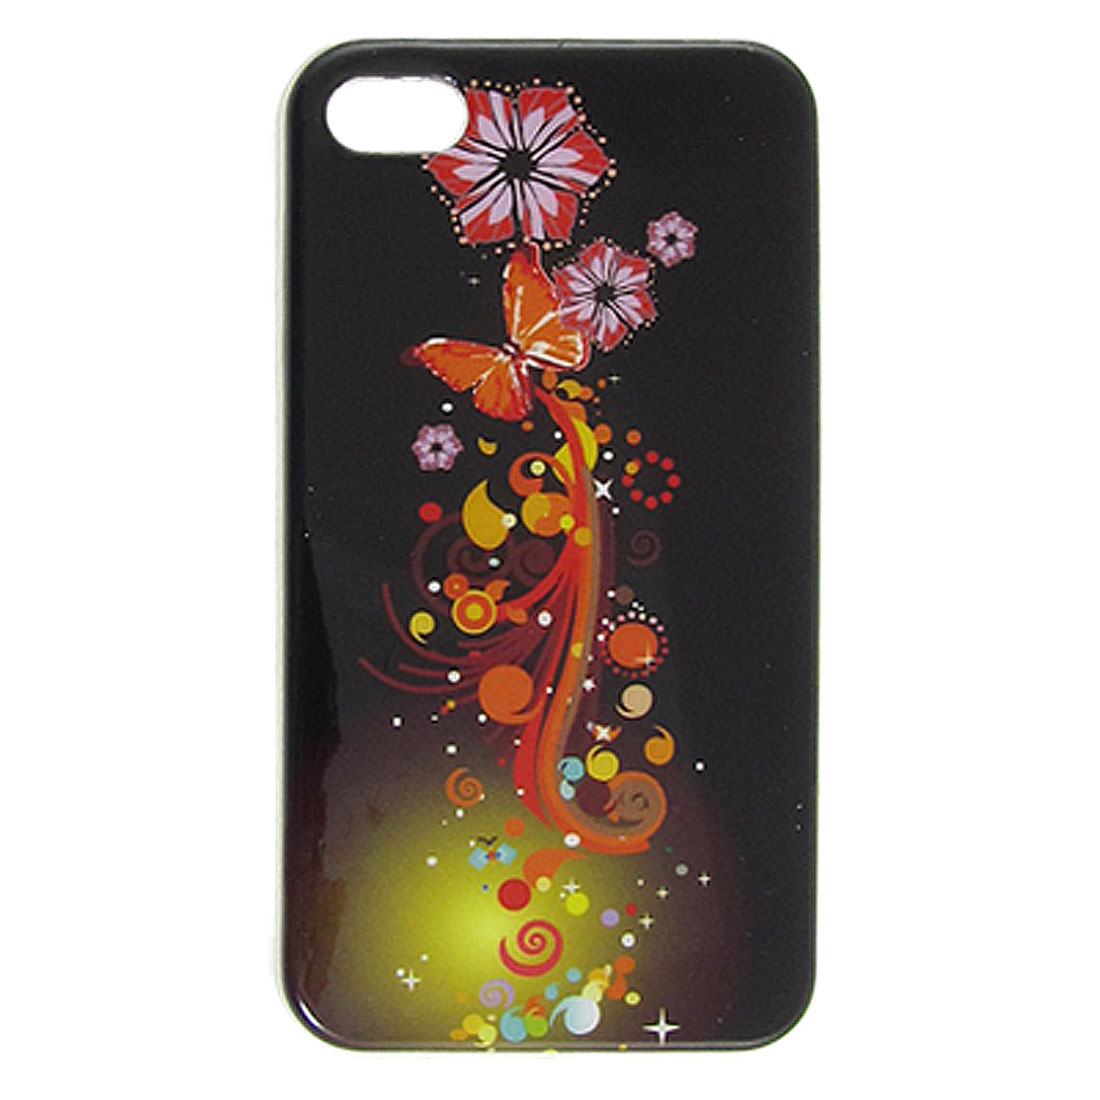 Colorful Flower Butterfly Print IMD Black Plastic Back Case for iPhone 4 4G 4GS